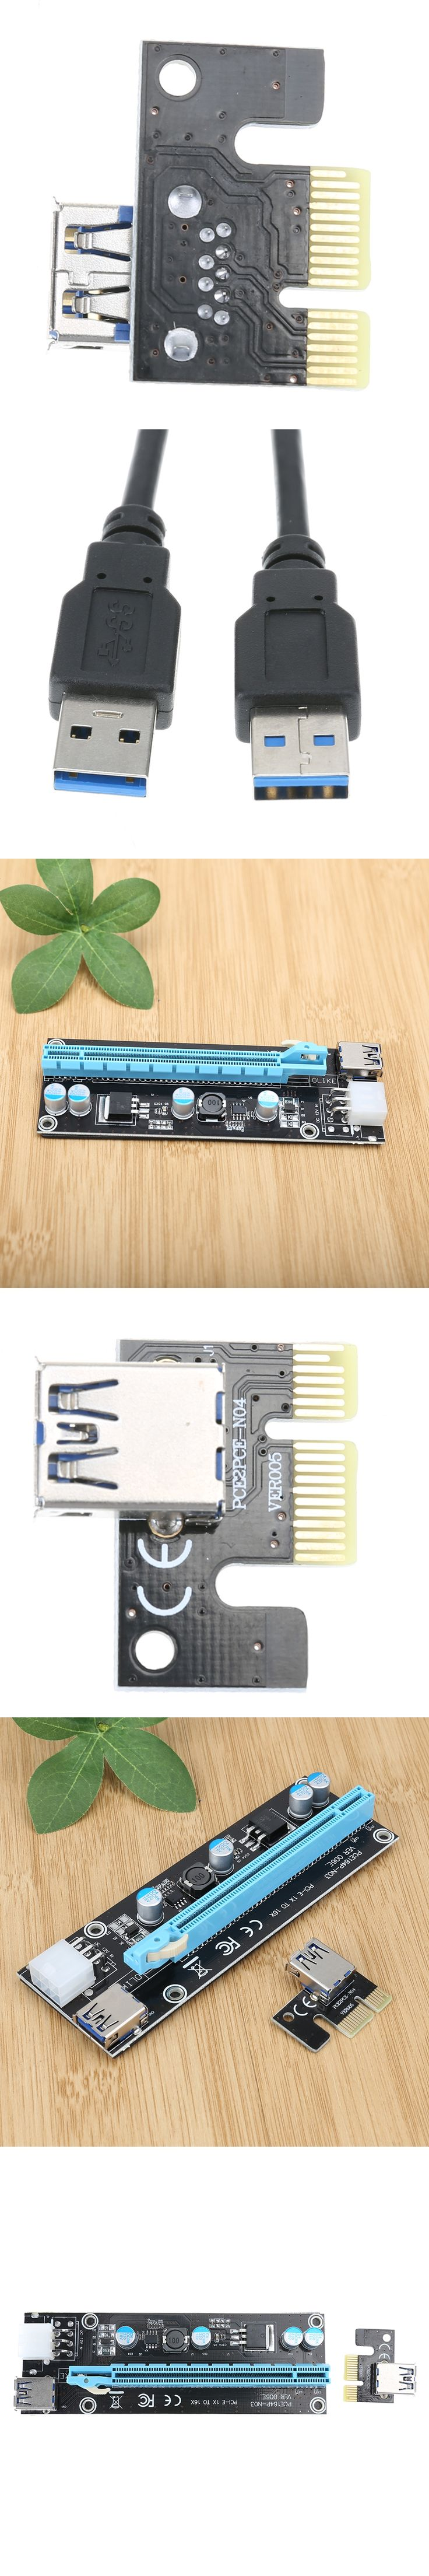 New Type PCIe Riser PCI-E Express 1X 16X Extender Riser Card Adapter 15PIN-6PIN Power Cable 60cm USB3.0 for BTC Mining Machine